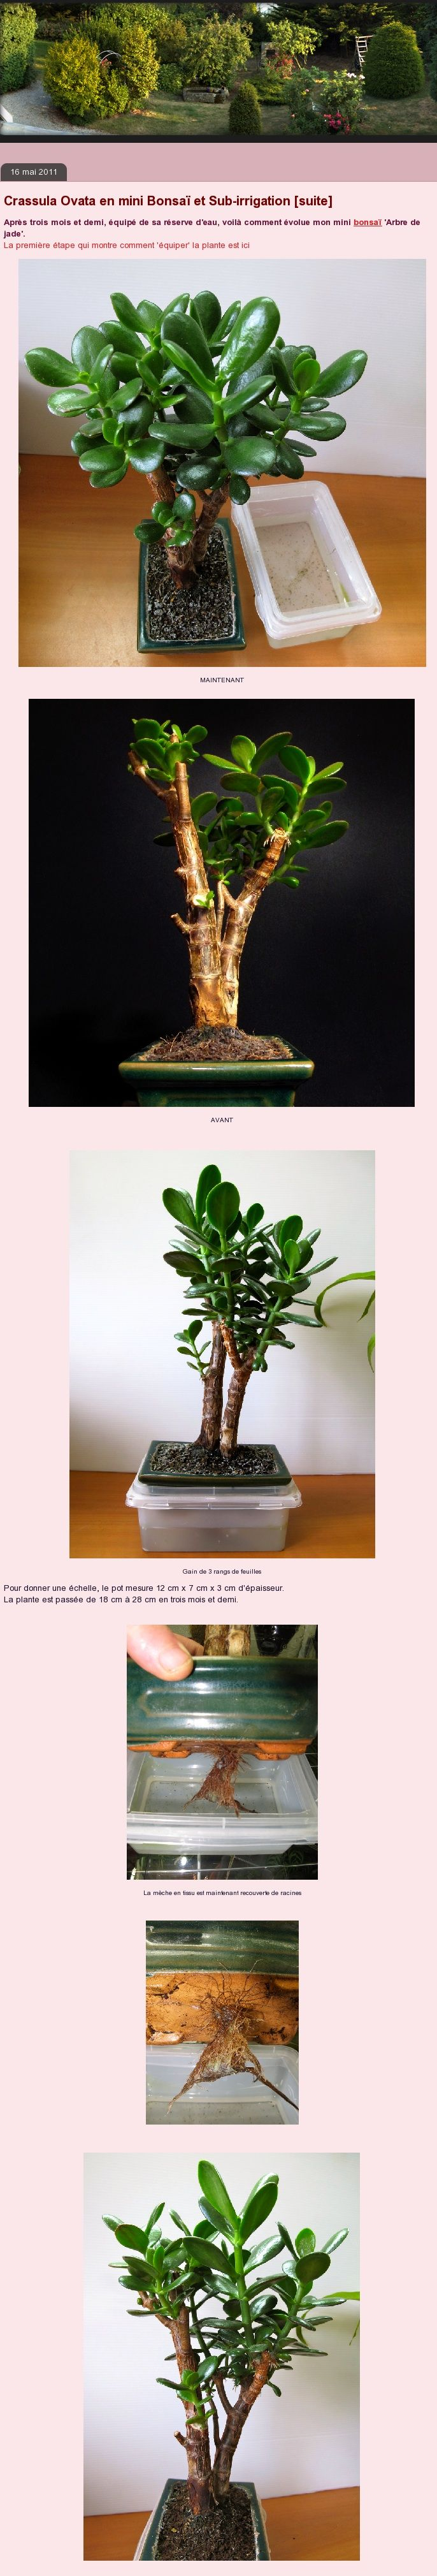 How to make a self-watering system for a Jade tree (Crassula)